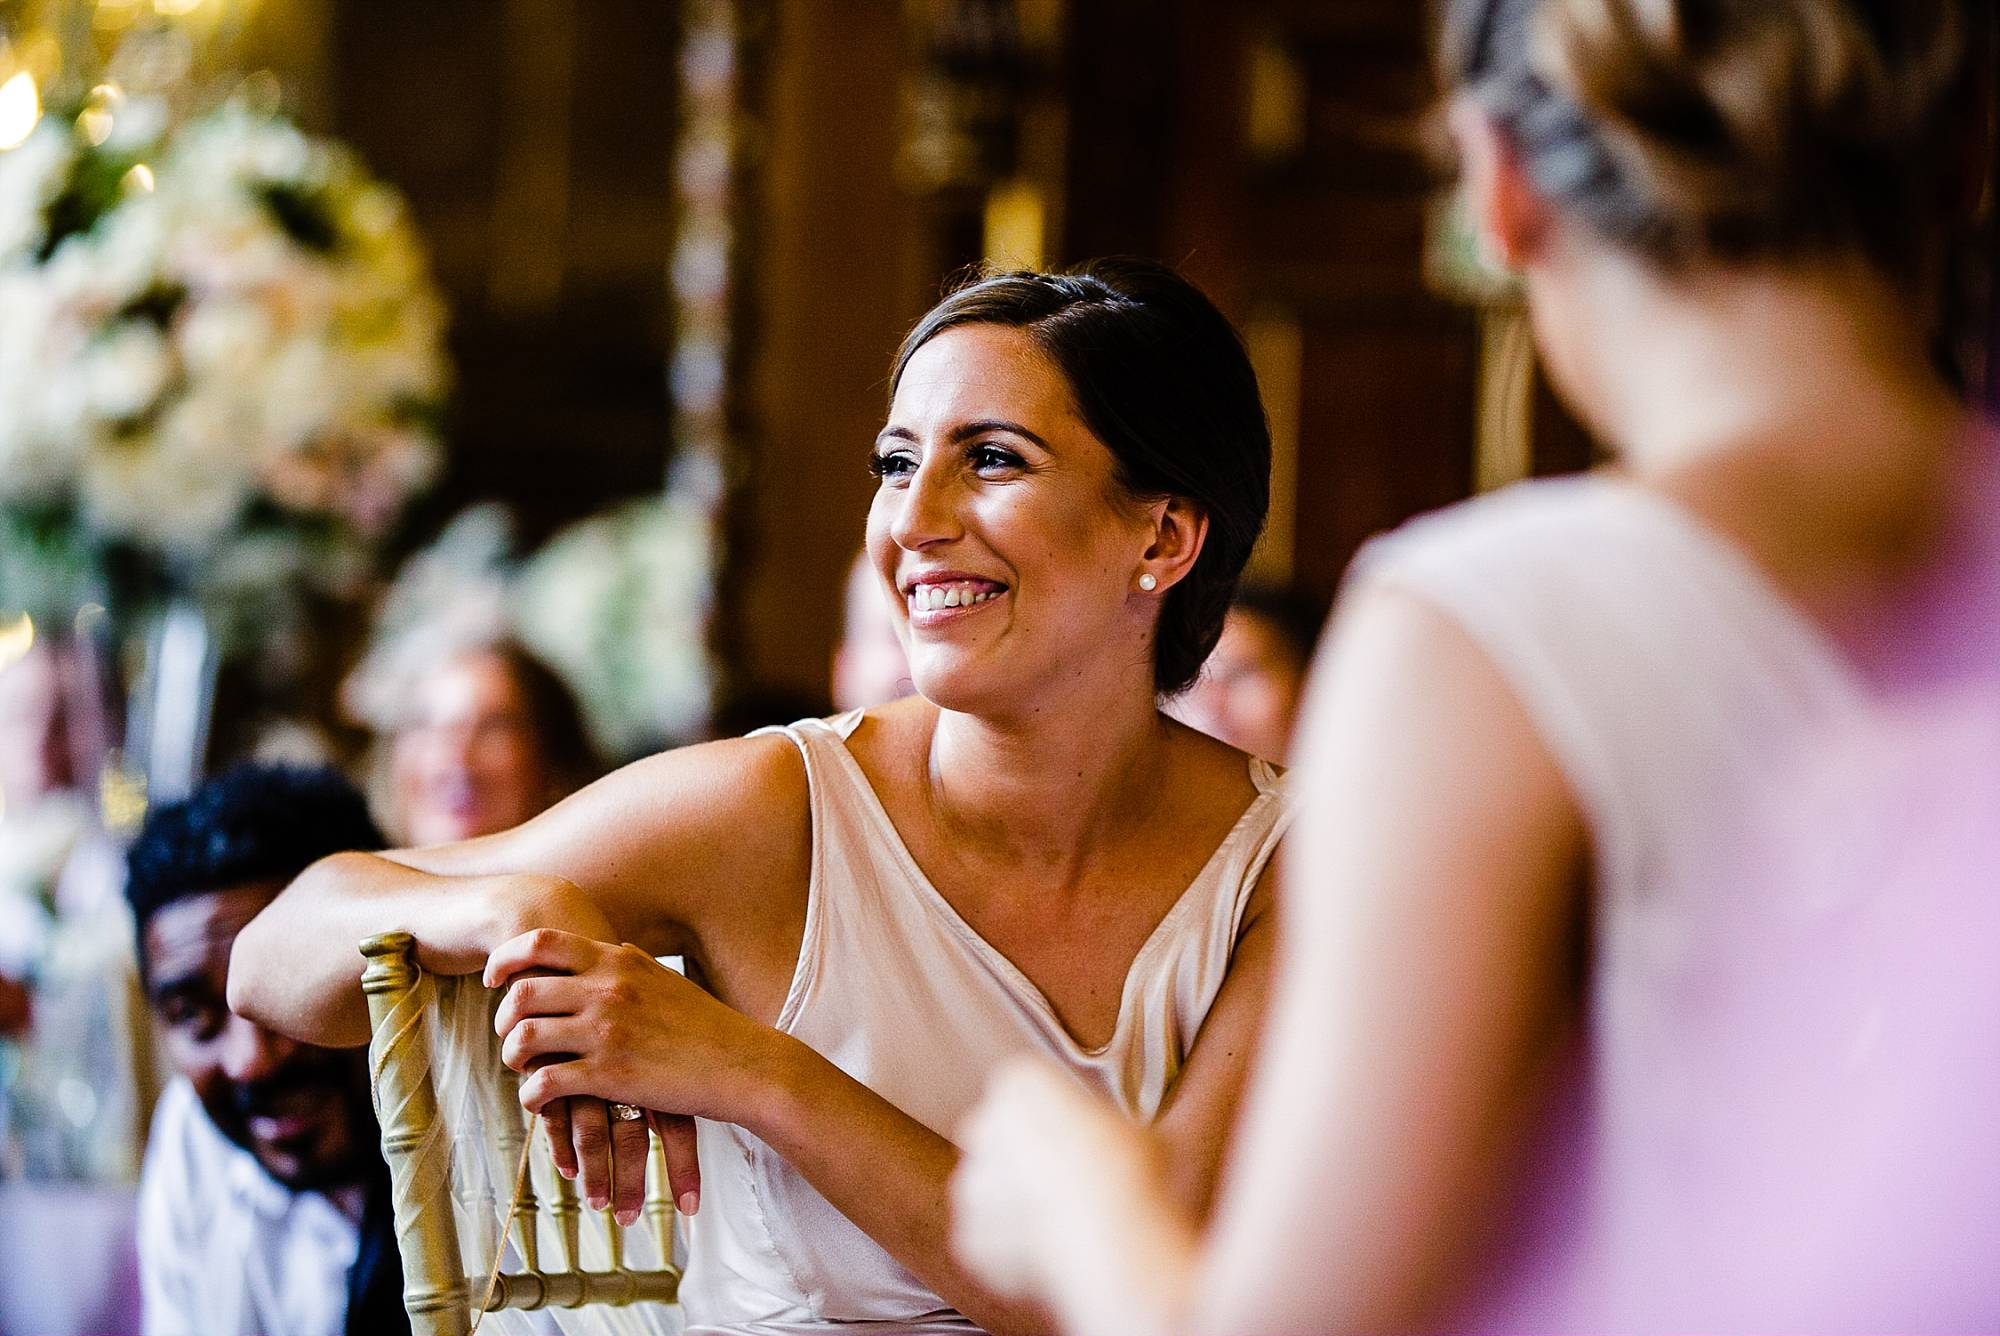 Gosfield Hall Essex Wedding Photographer_0108.jpg